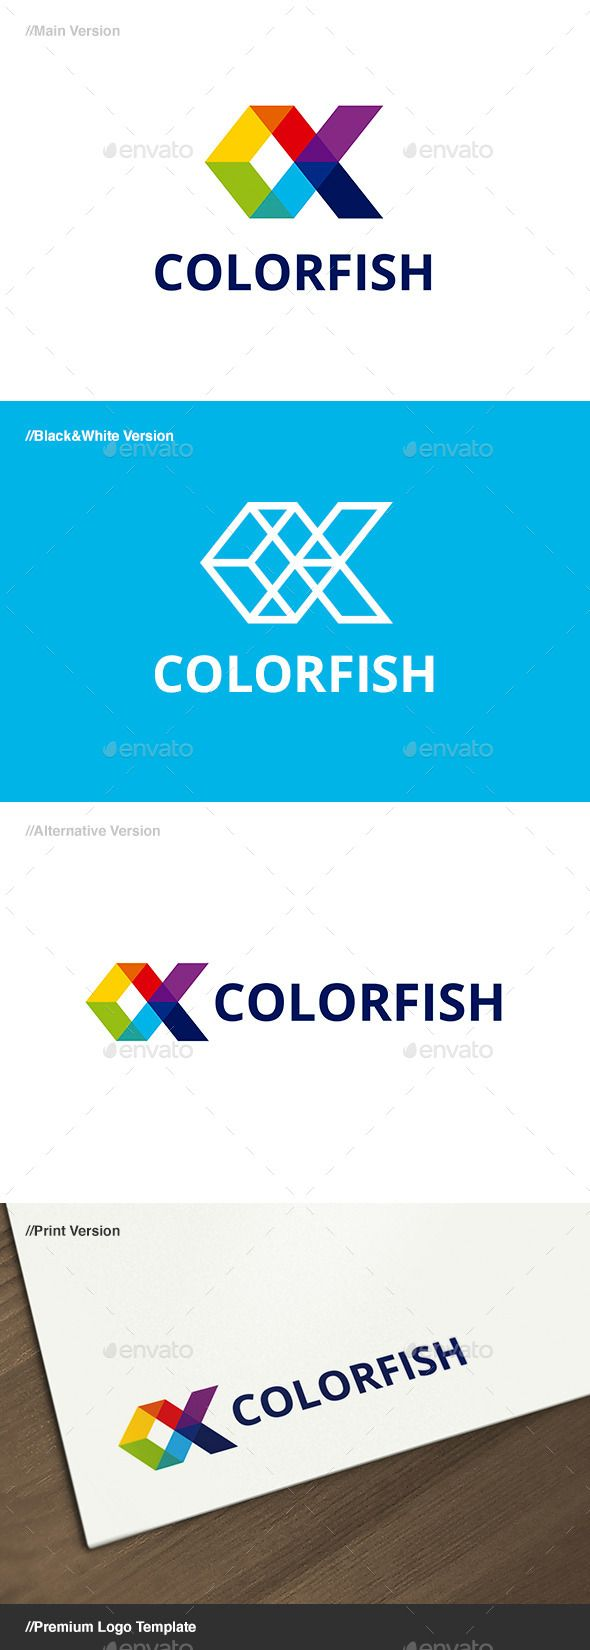 Color Fish Logo — Vector EPS #web #app • Available here → https://graphicriver.net/item/color-fish-logo/666923?ref=pxcr